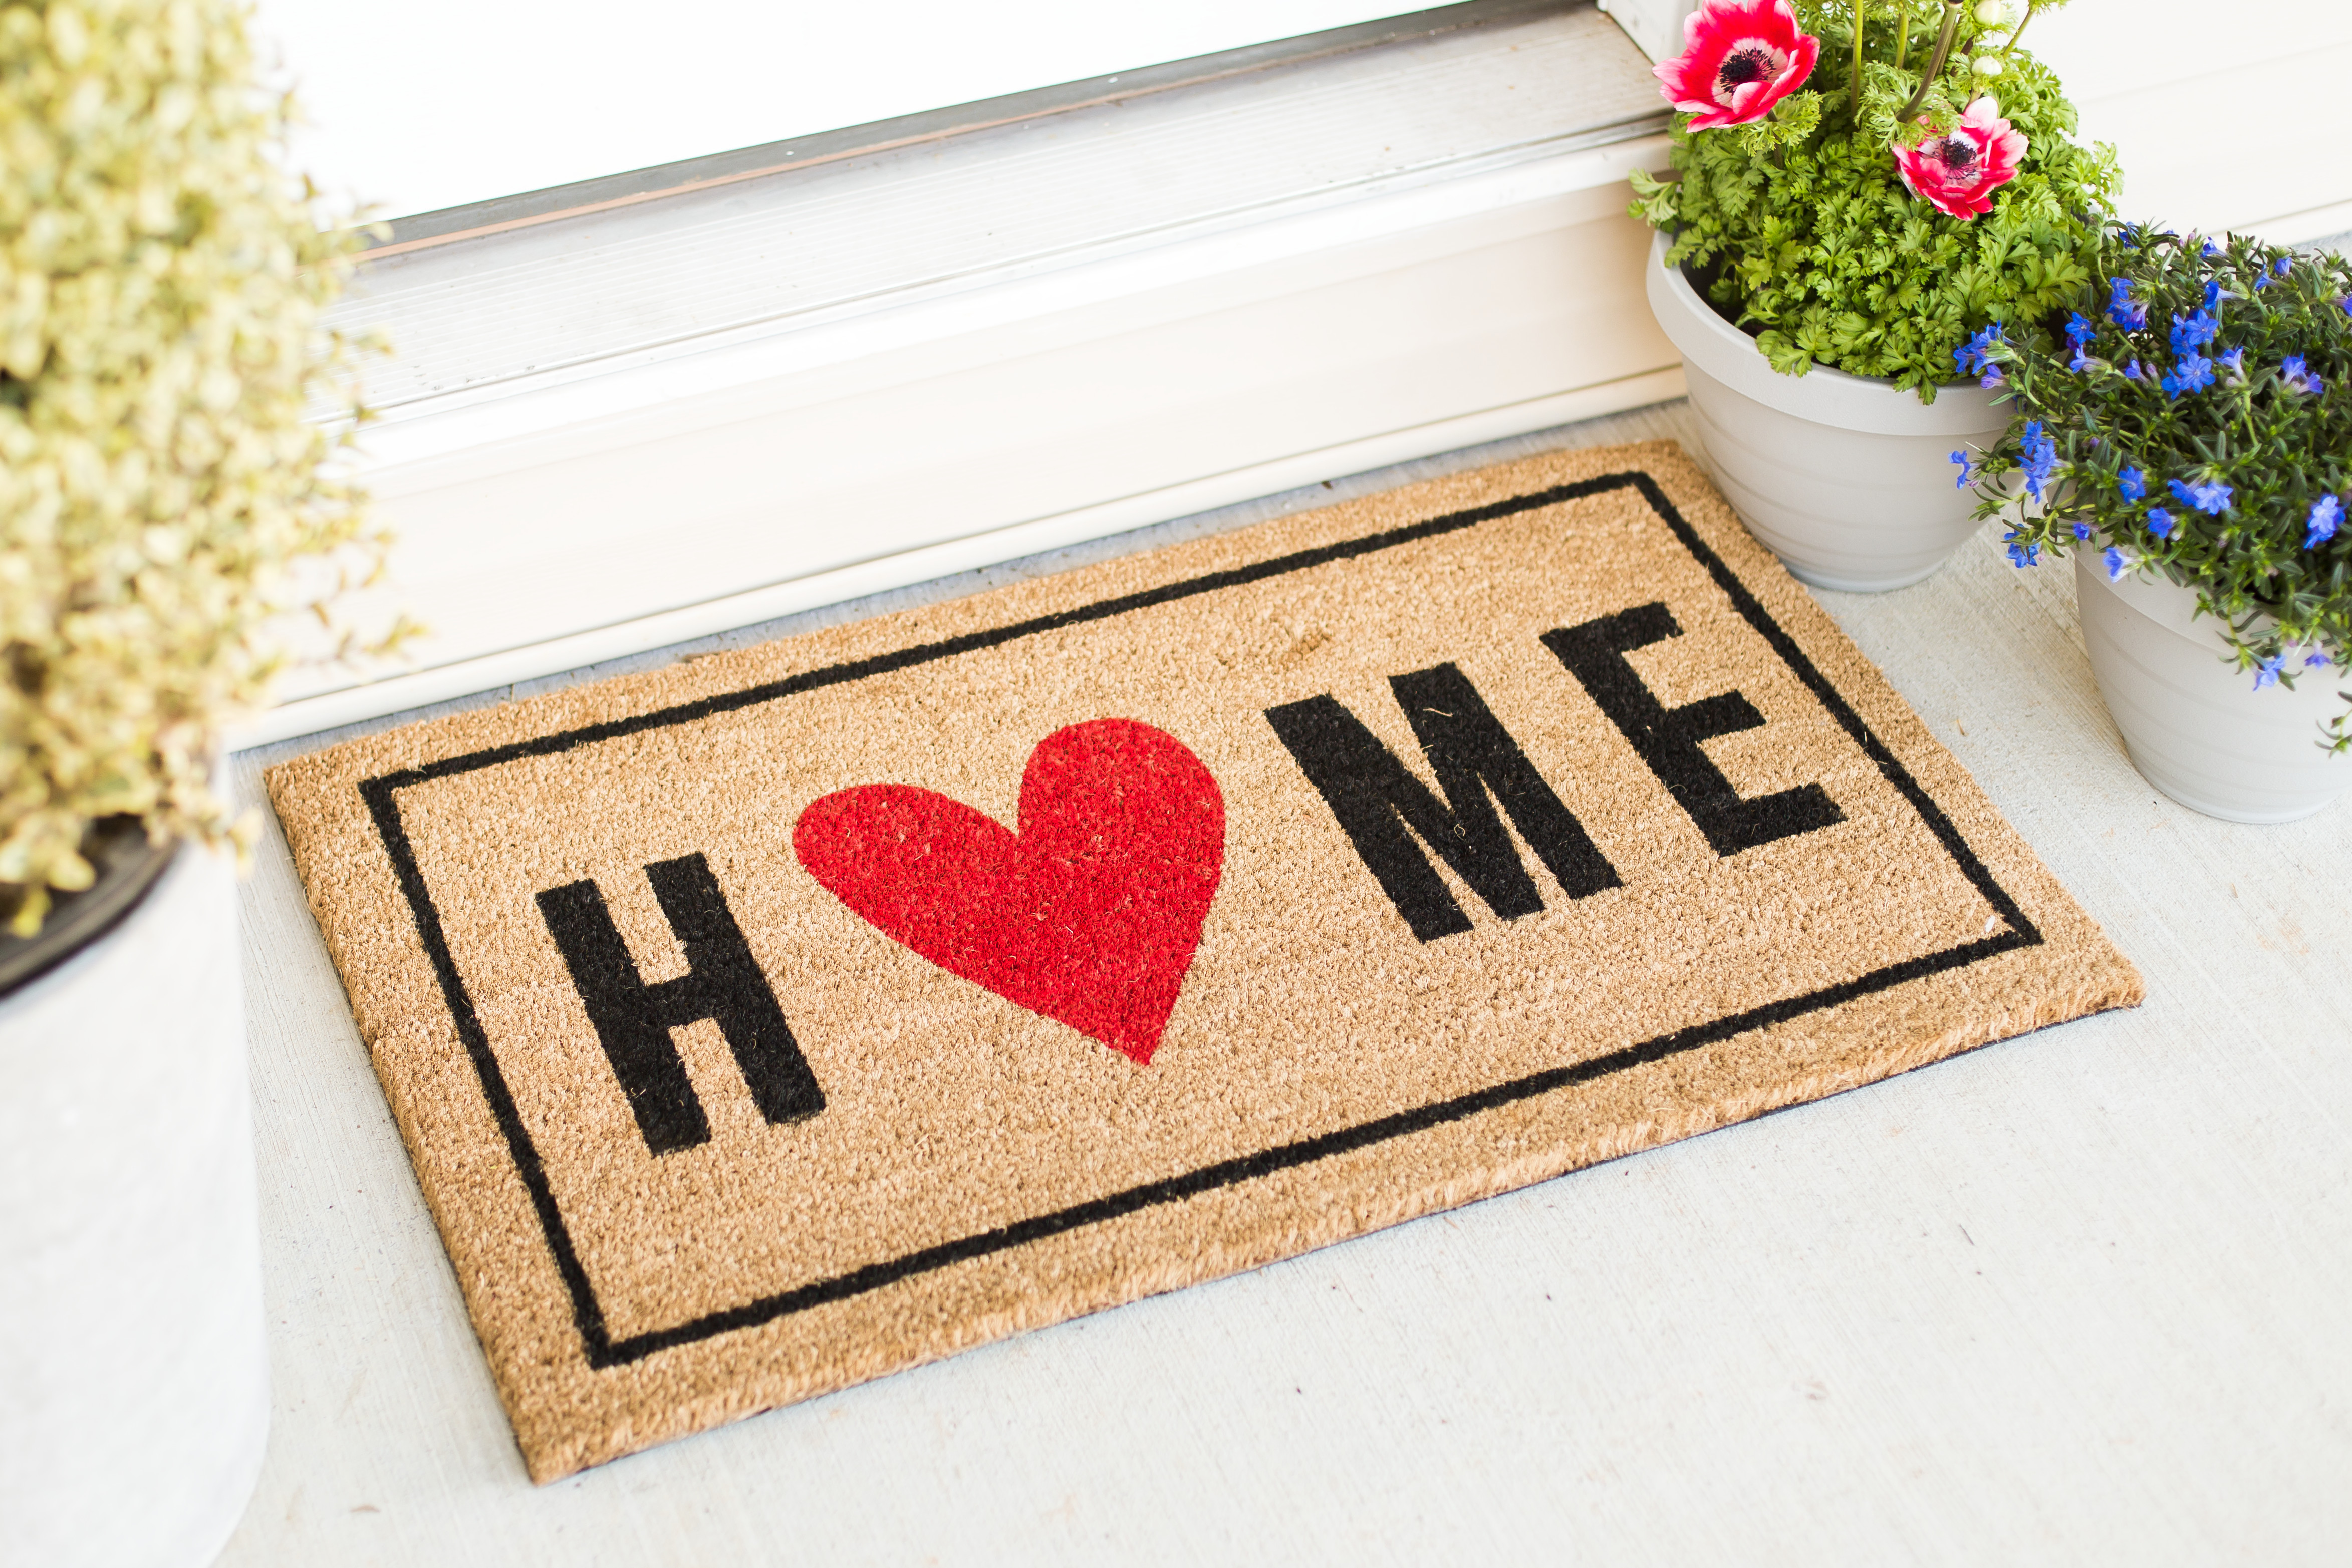 A welcome mat that reads HOME with potted plants beside it.